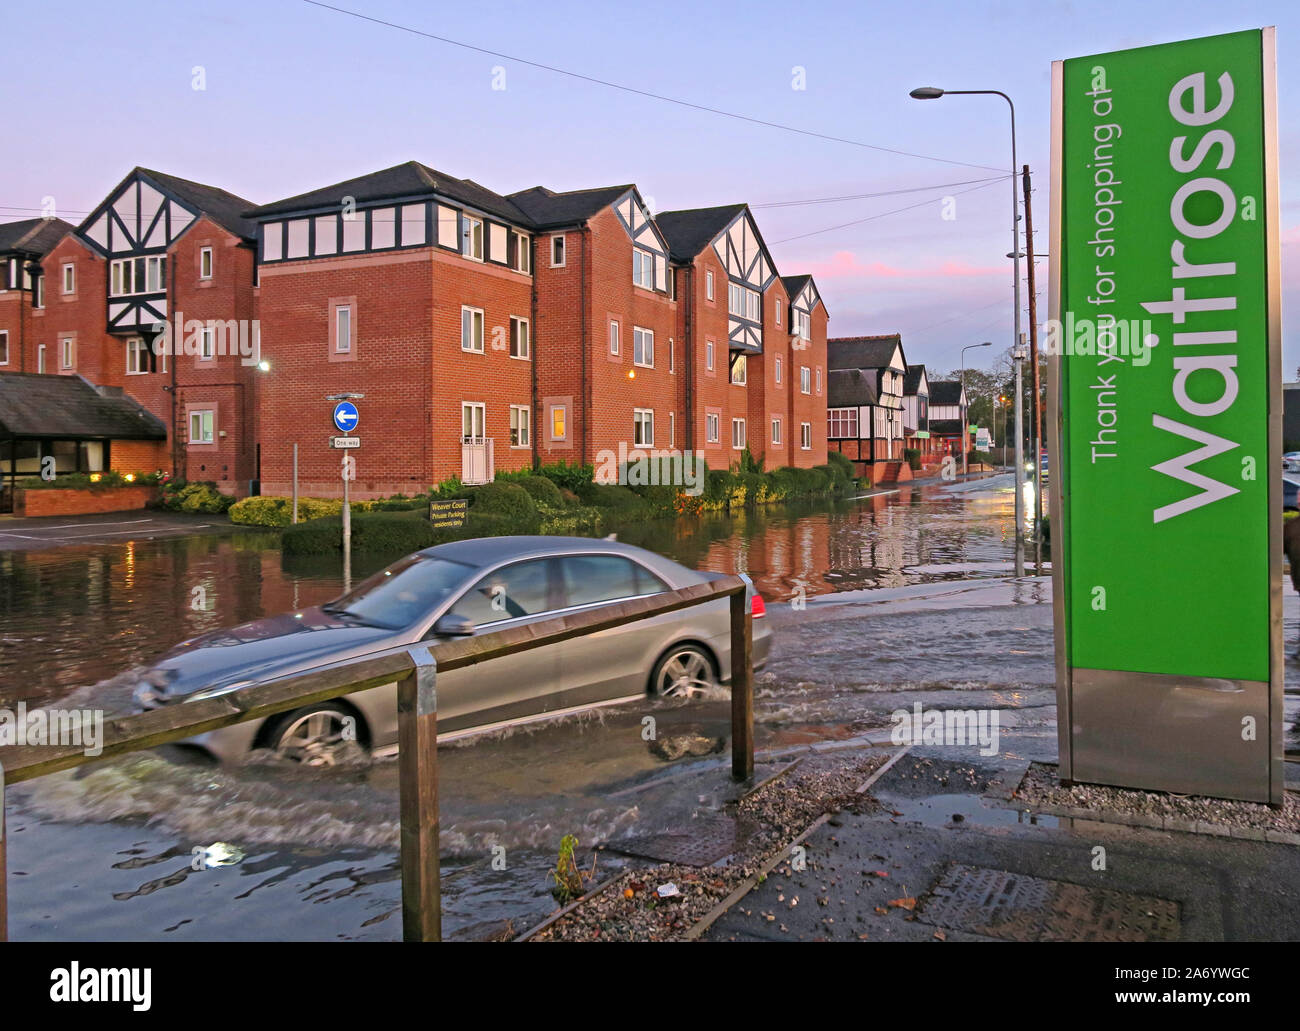 Severe flooding in Northwich Town, Chester way, River Weaver October 2019, Cheshire, England, UK - Waitrose Car Park Flooding Stock Photo